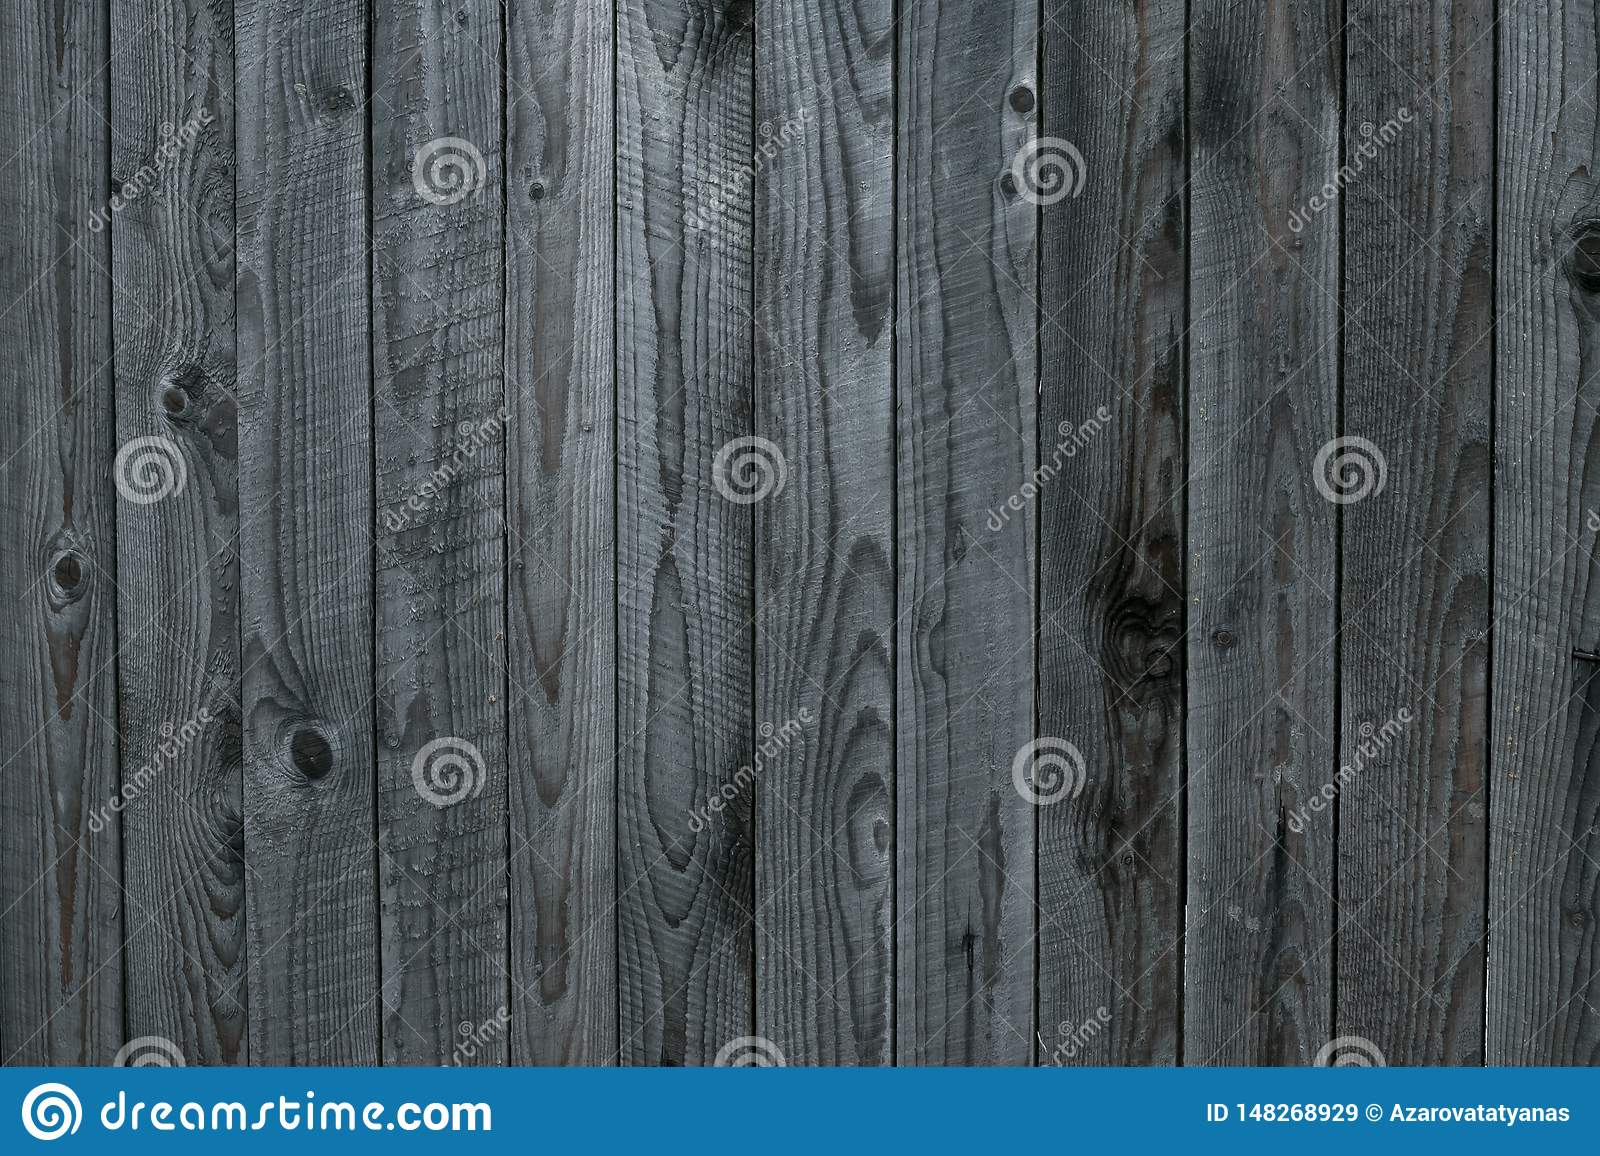 Grunge texture of gray old wooden fence. Gray background of shabby wooden boards, planks. Surface of old shabby weathered wooden p